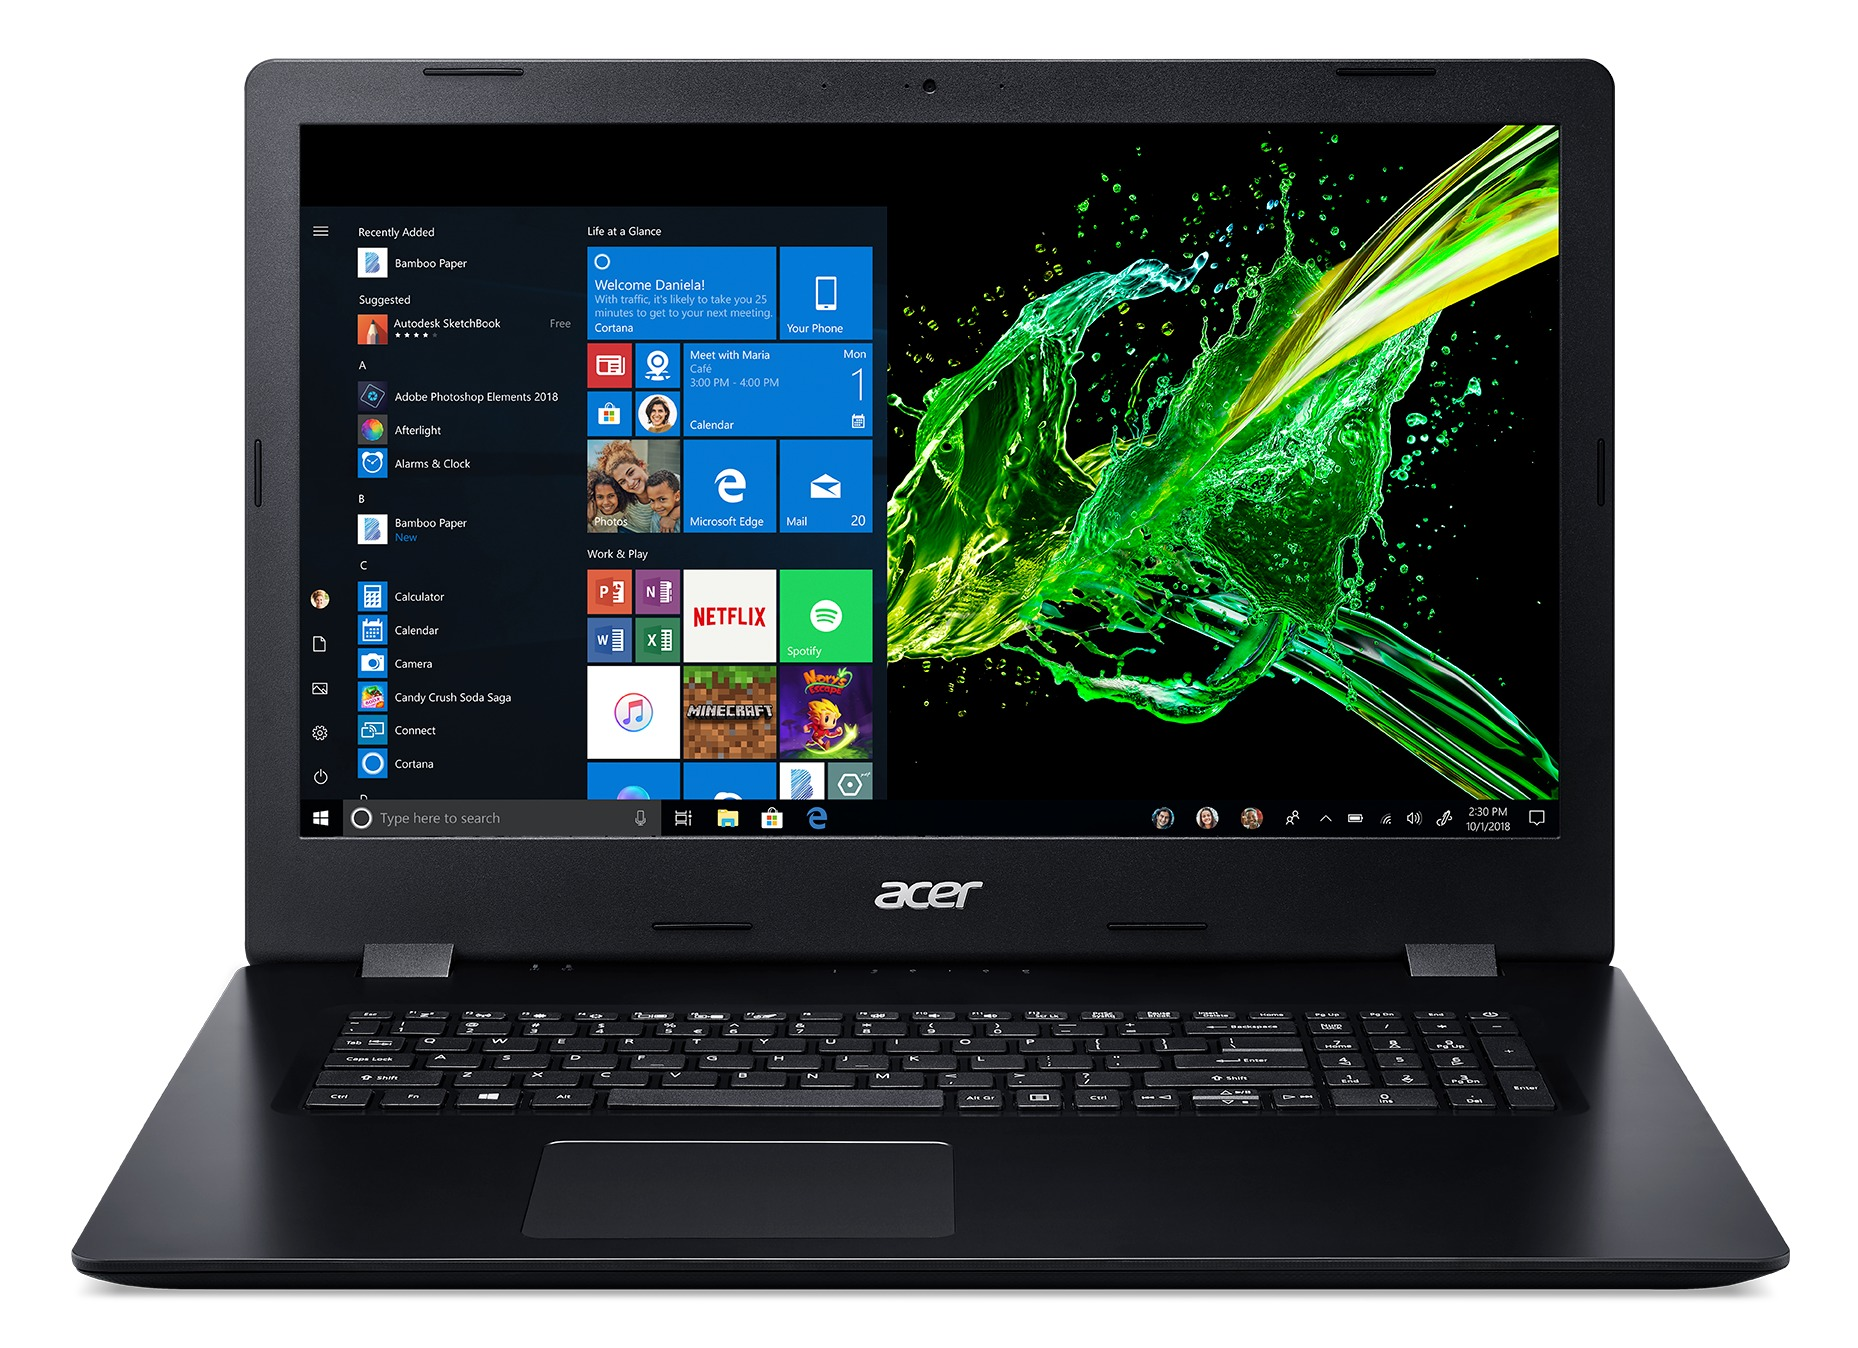 Acer Aspire 3 A317-51K-37GG laptop